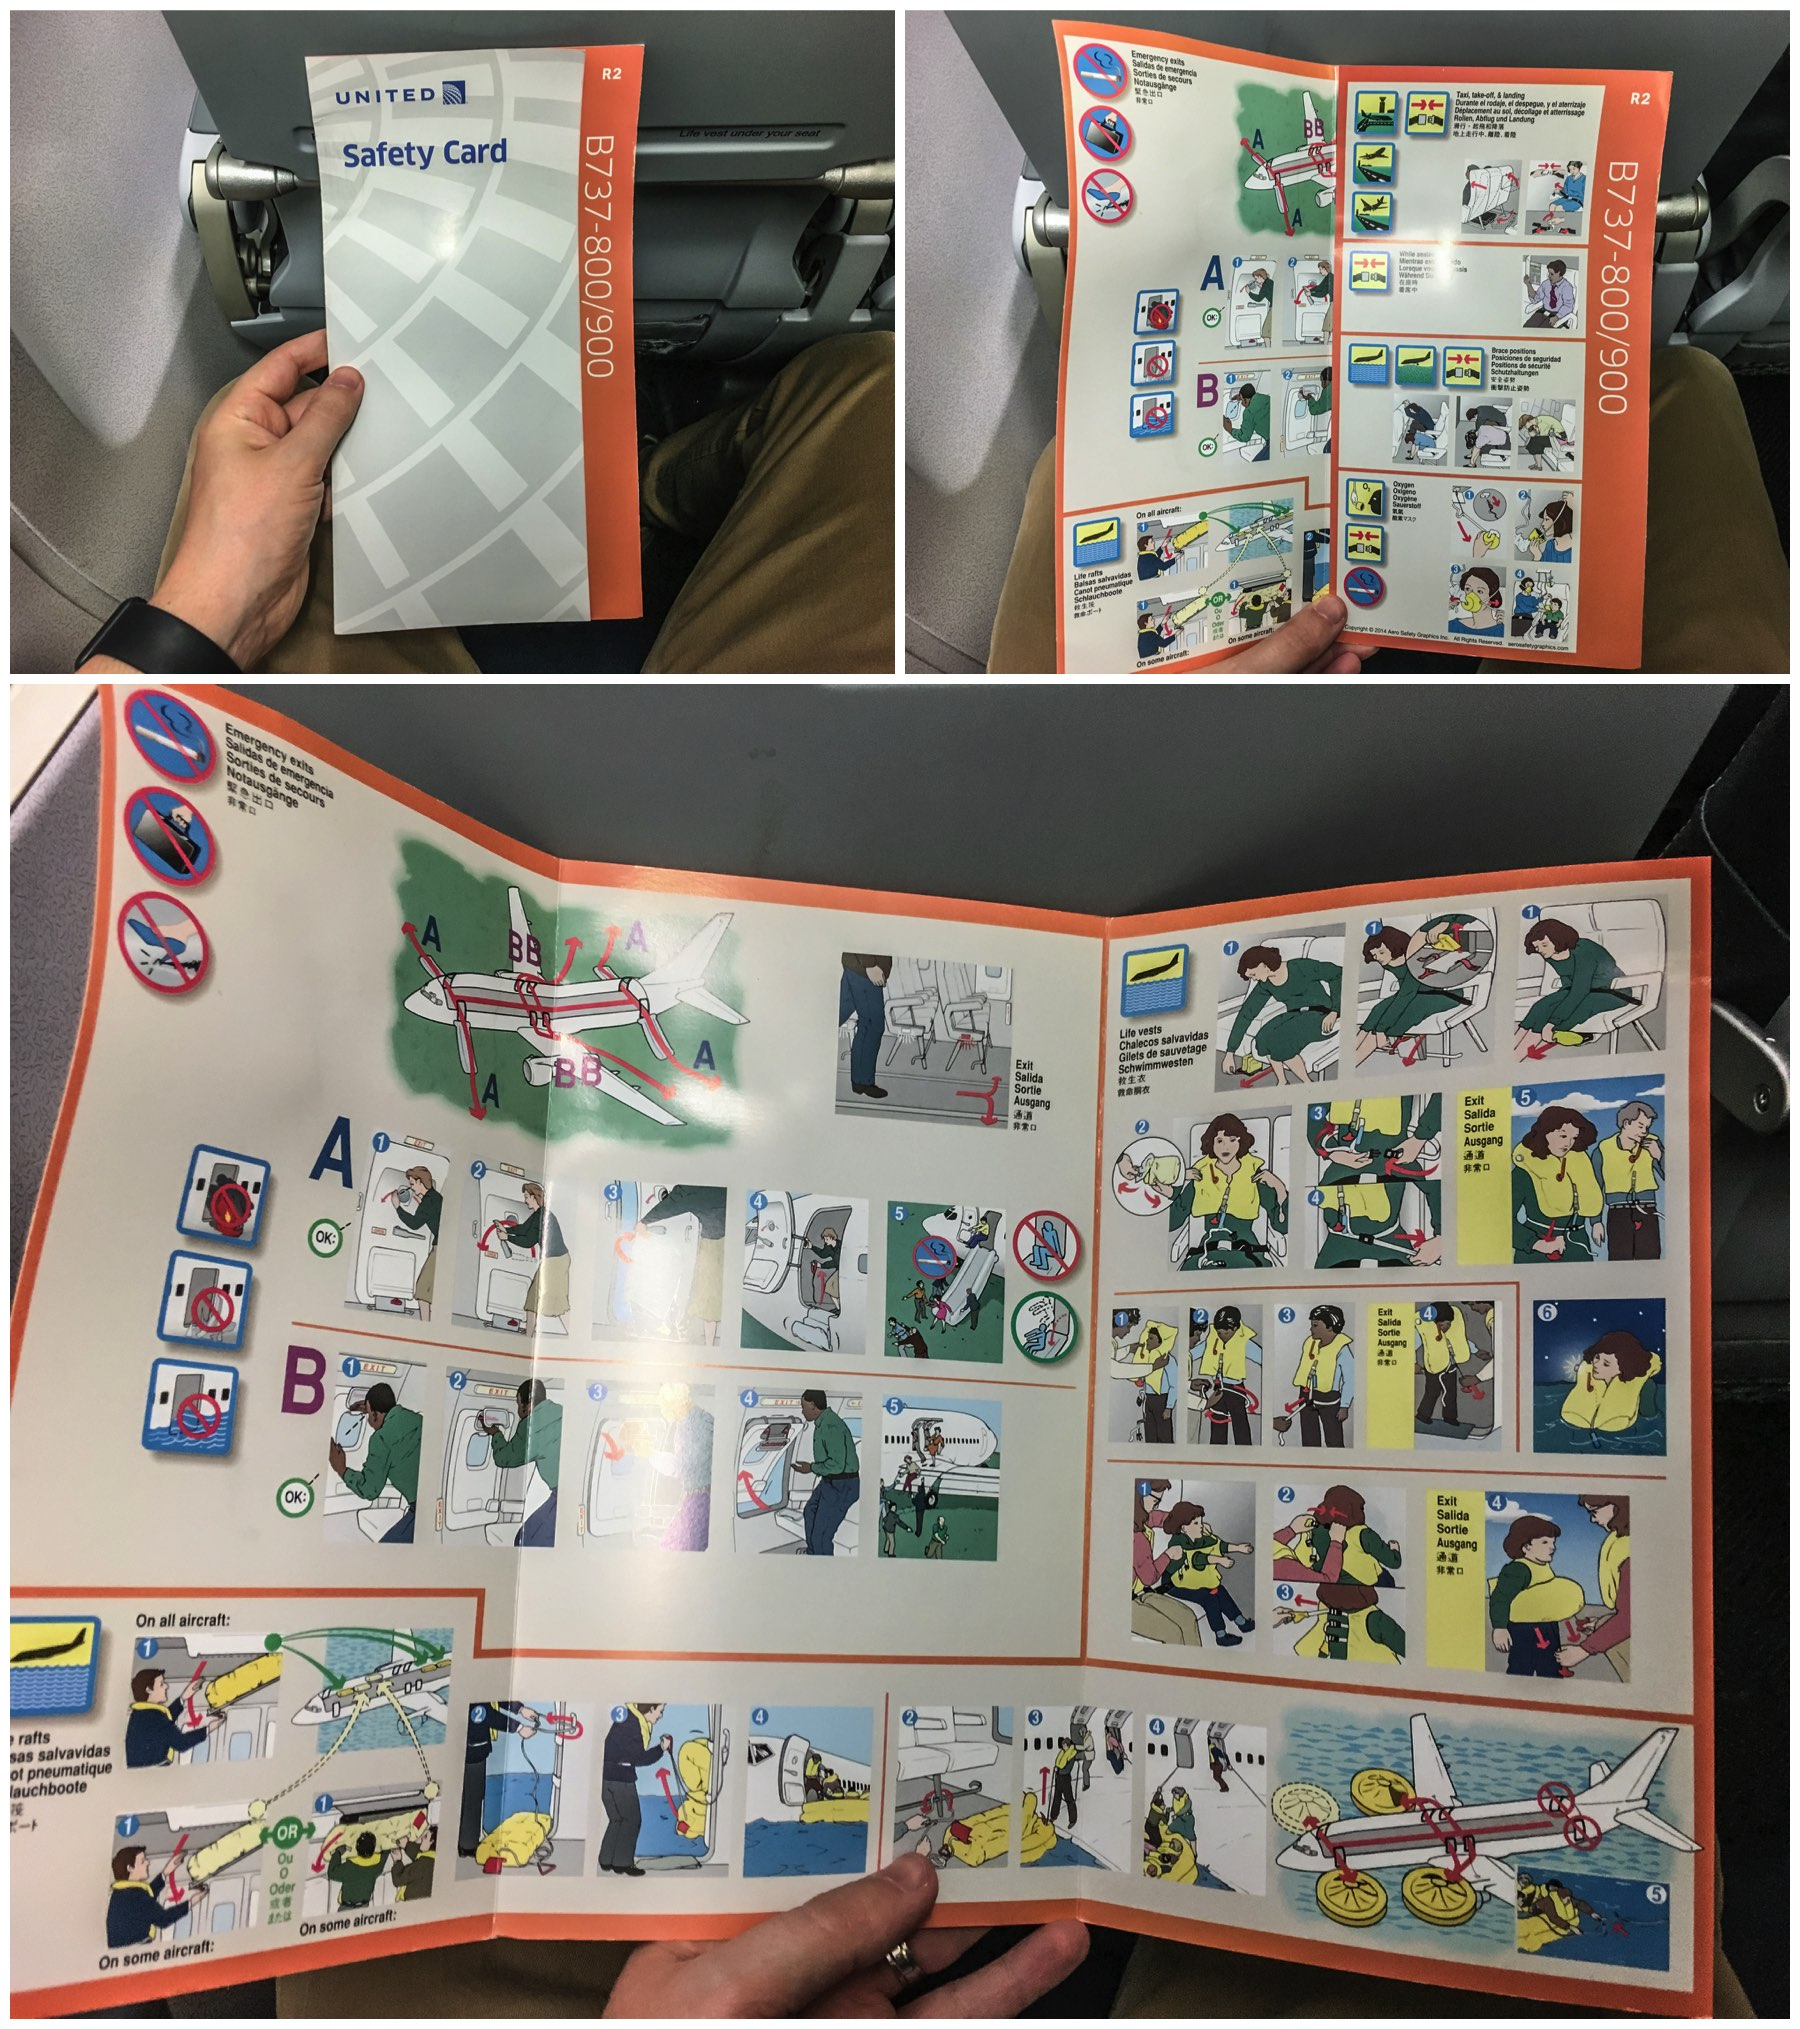 United Airlines 737–800 safety card